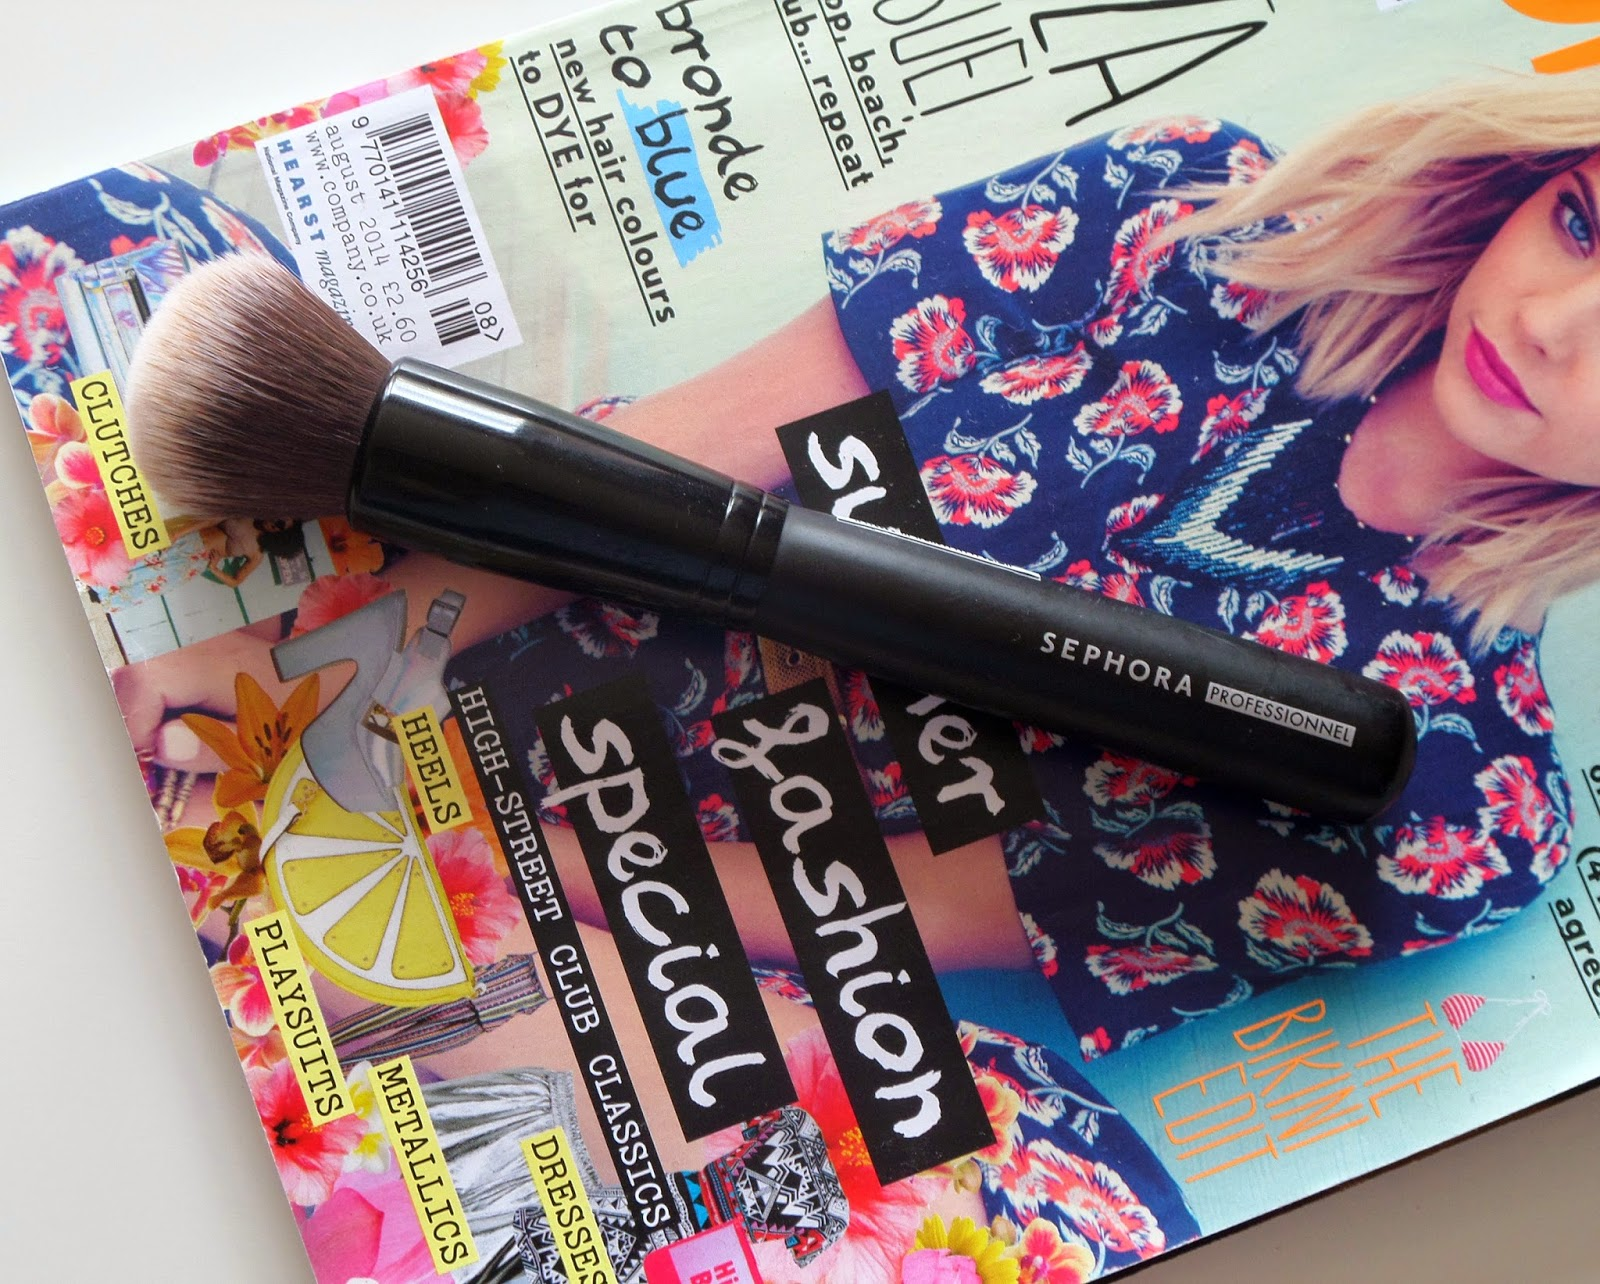 Sephora Classic Multitasker Brush